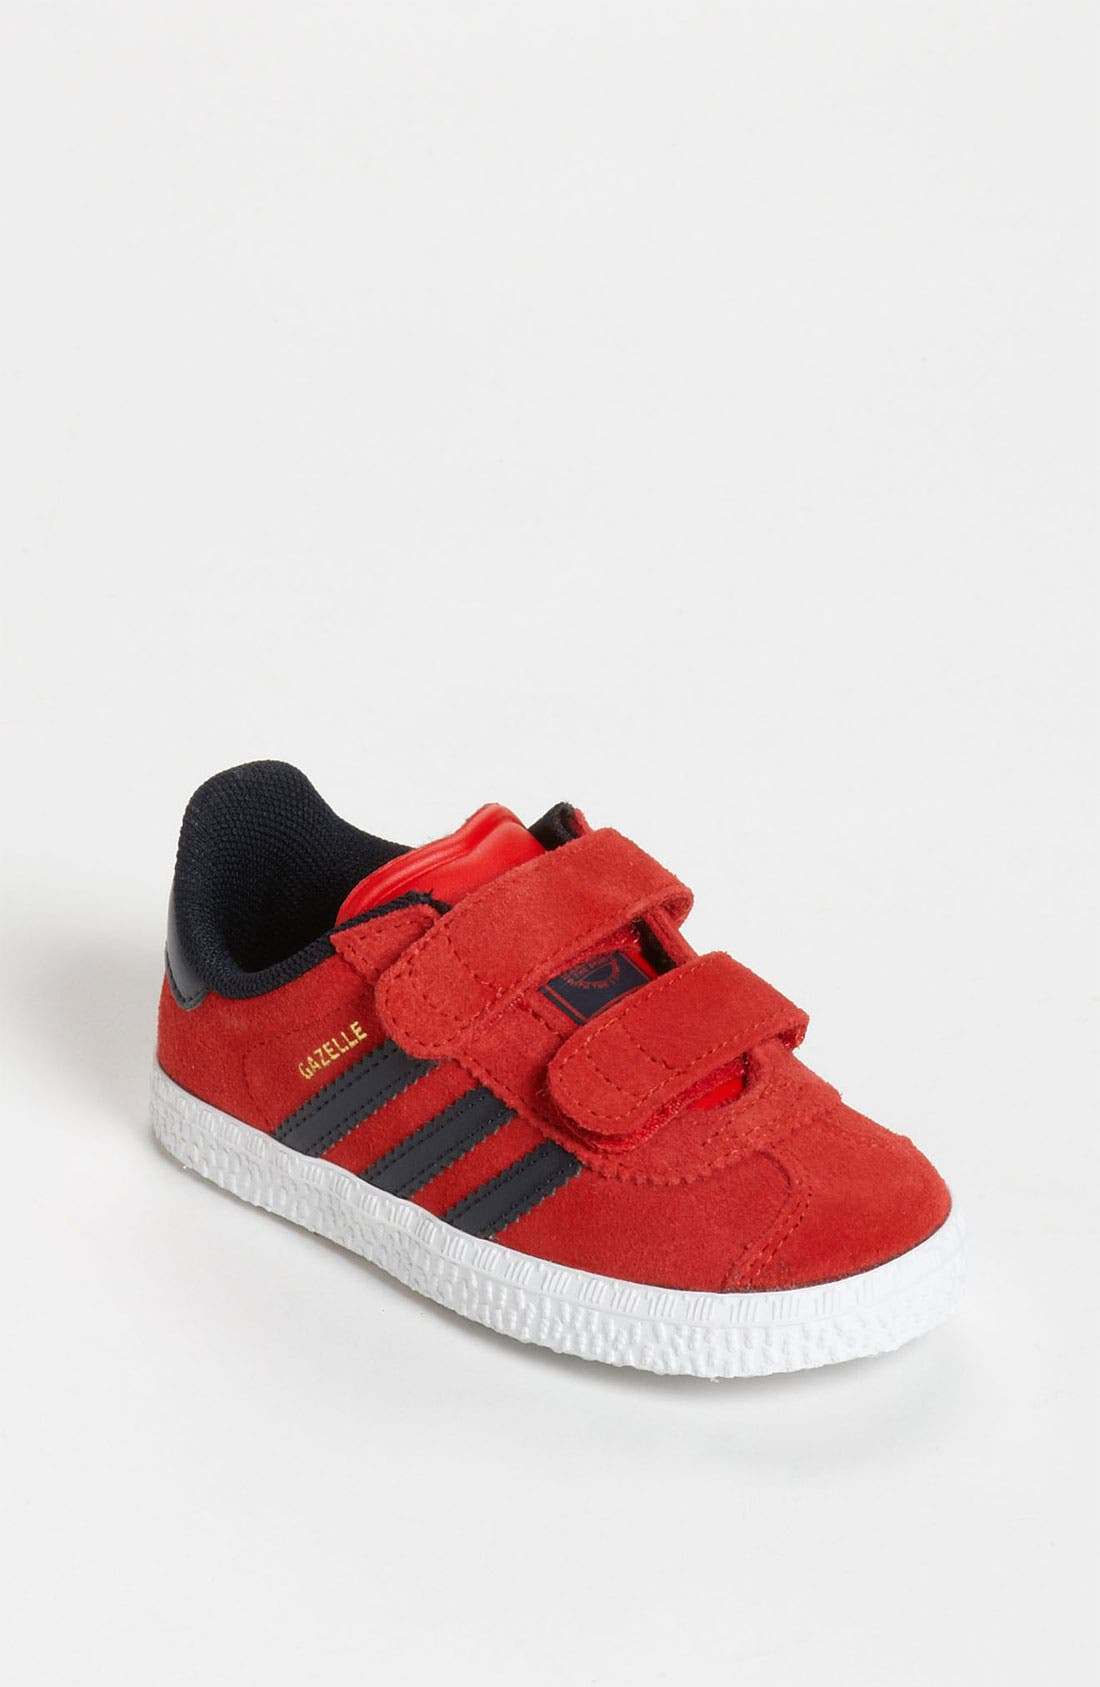 Alternate Image 1 Selected - adidas 'Gazelle' Sneaker (Baby, Walker & Toddler)